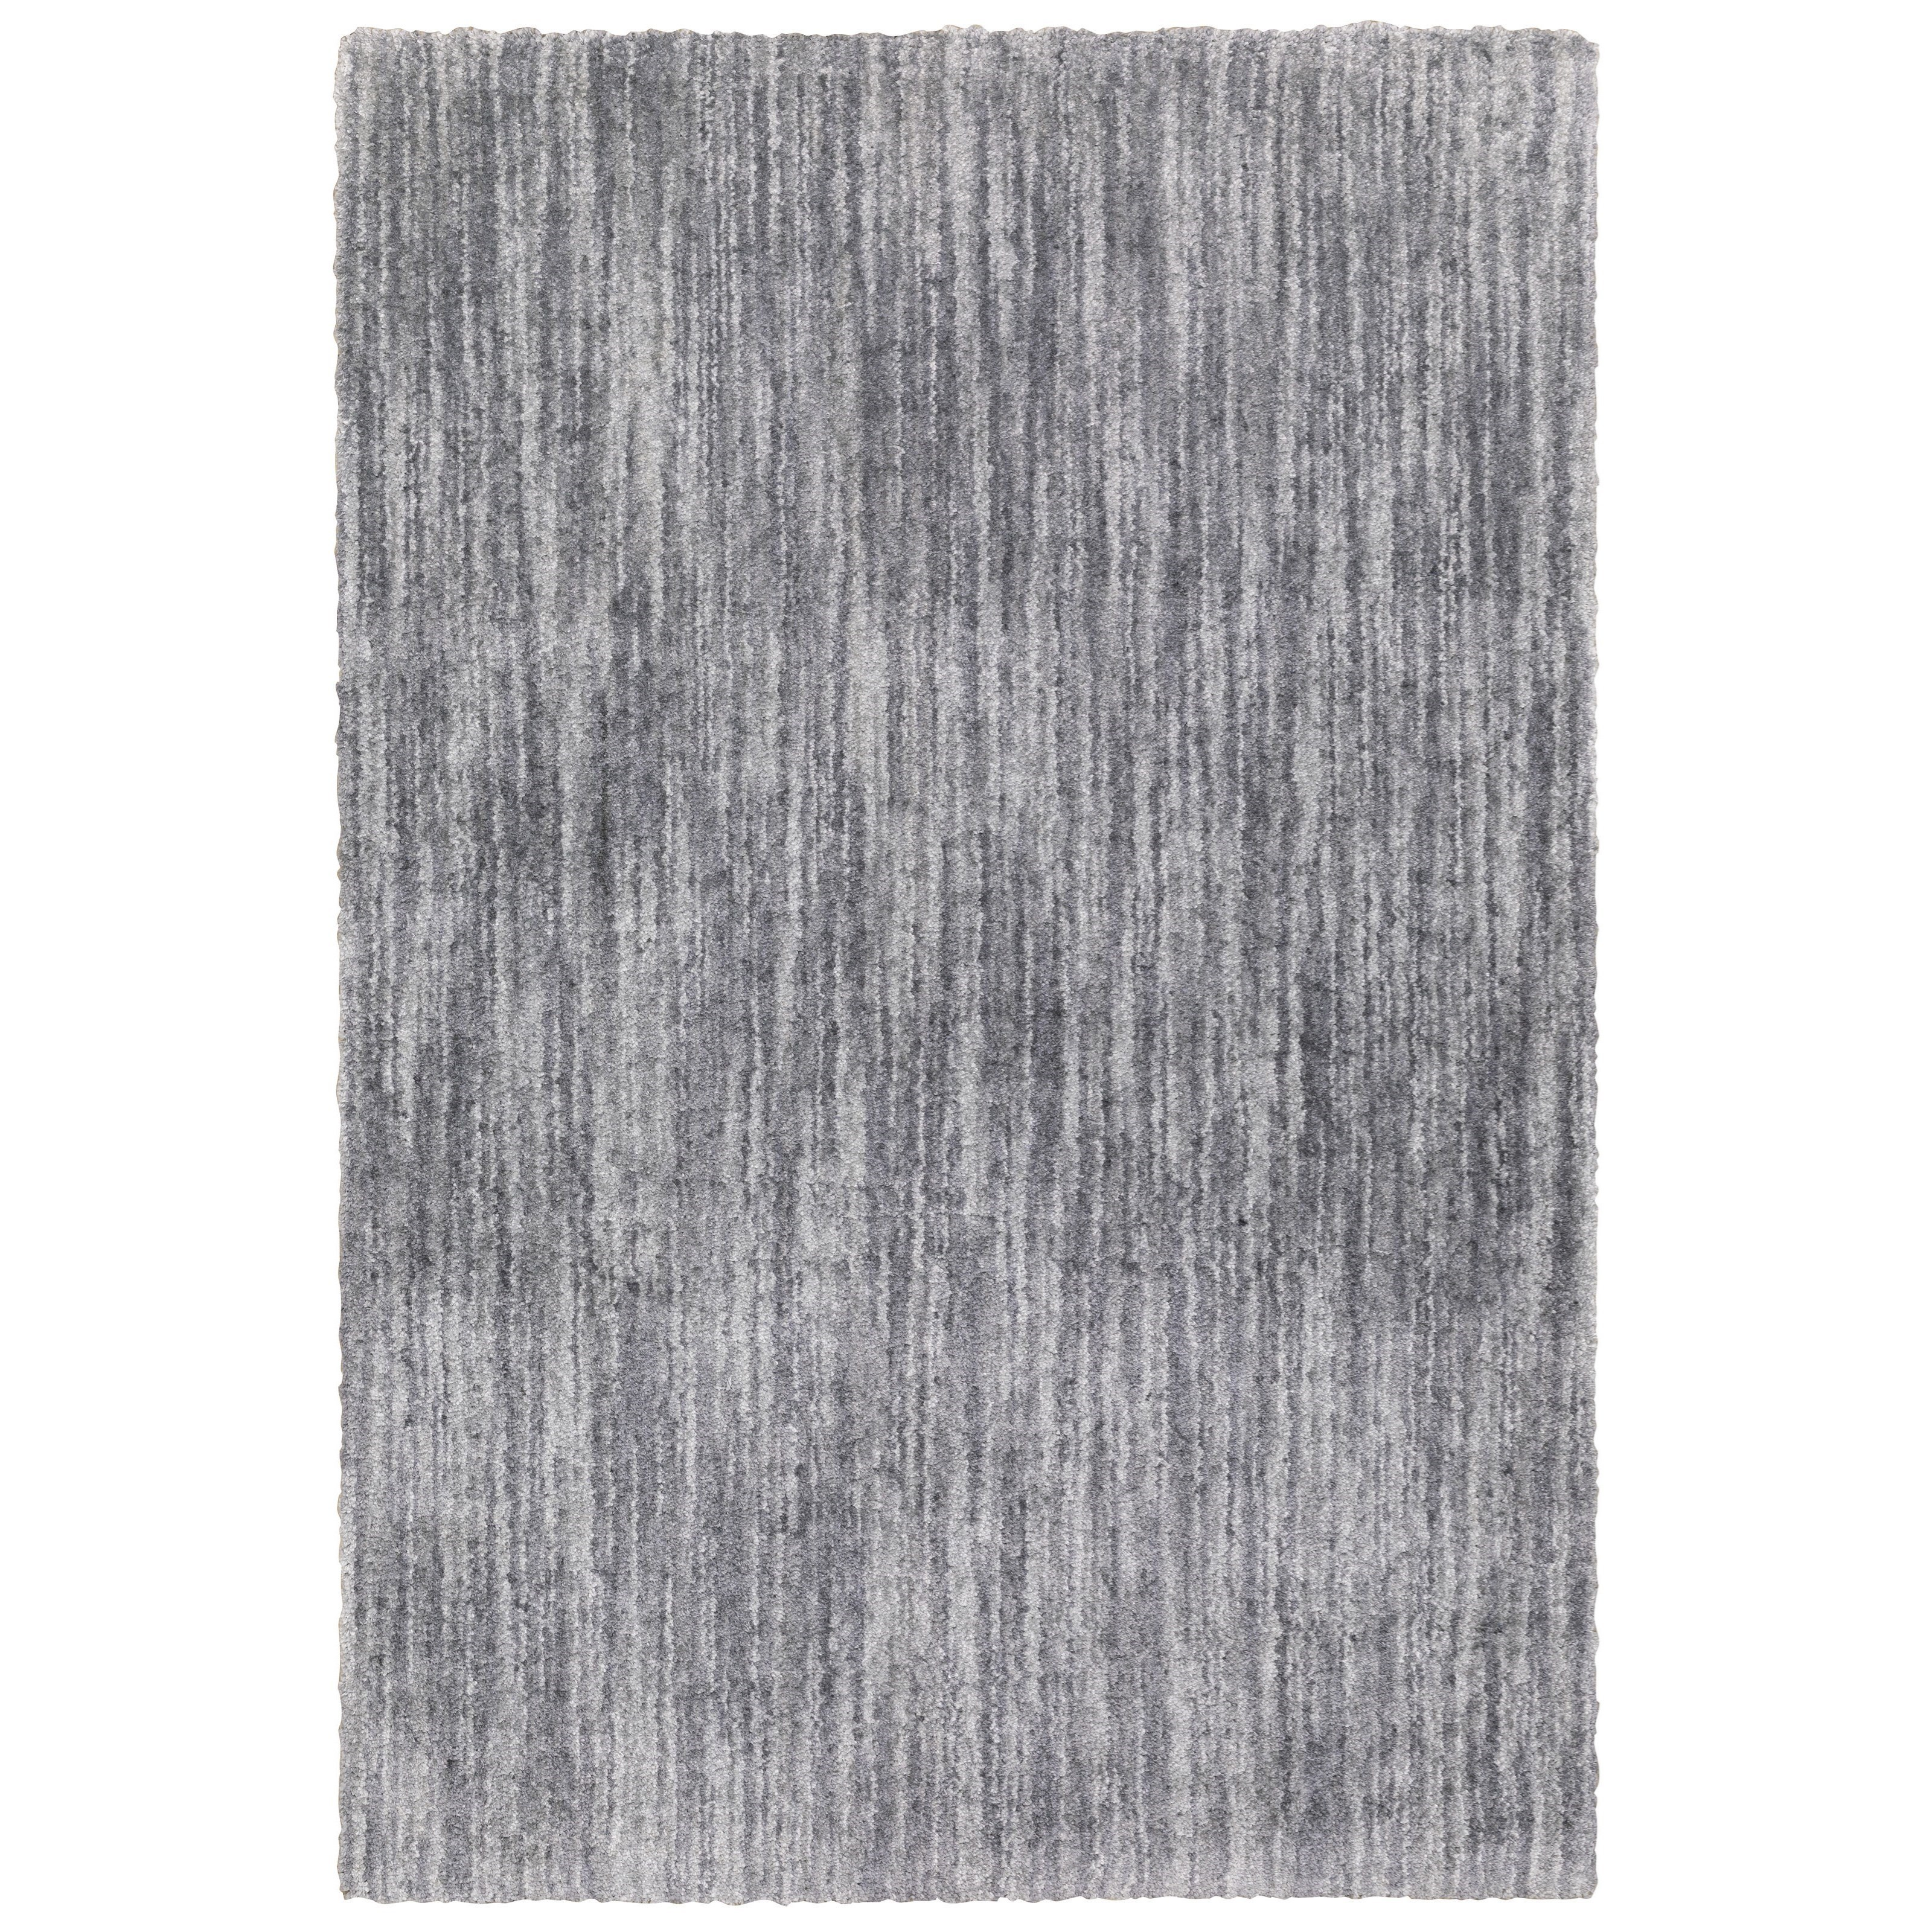 """ASPEN 9'10"""" X 12'10"""" Rectangle Rug by Oriental Weavers at Novello Home Furnishings"""